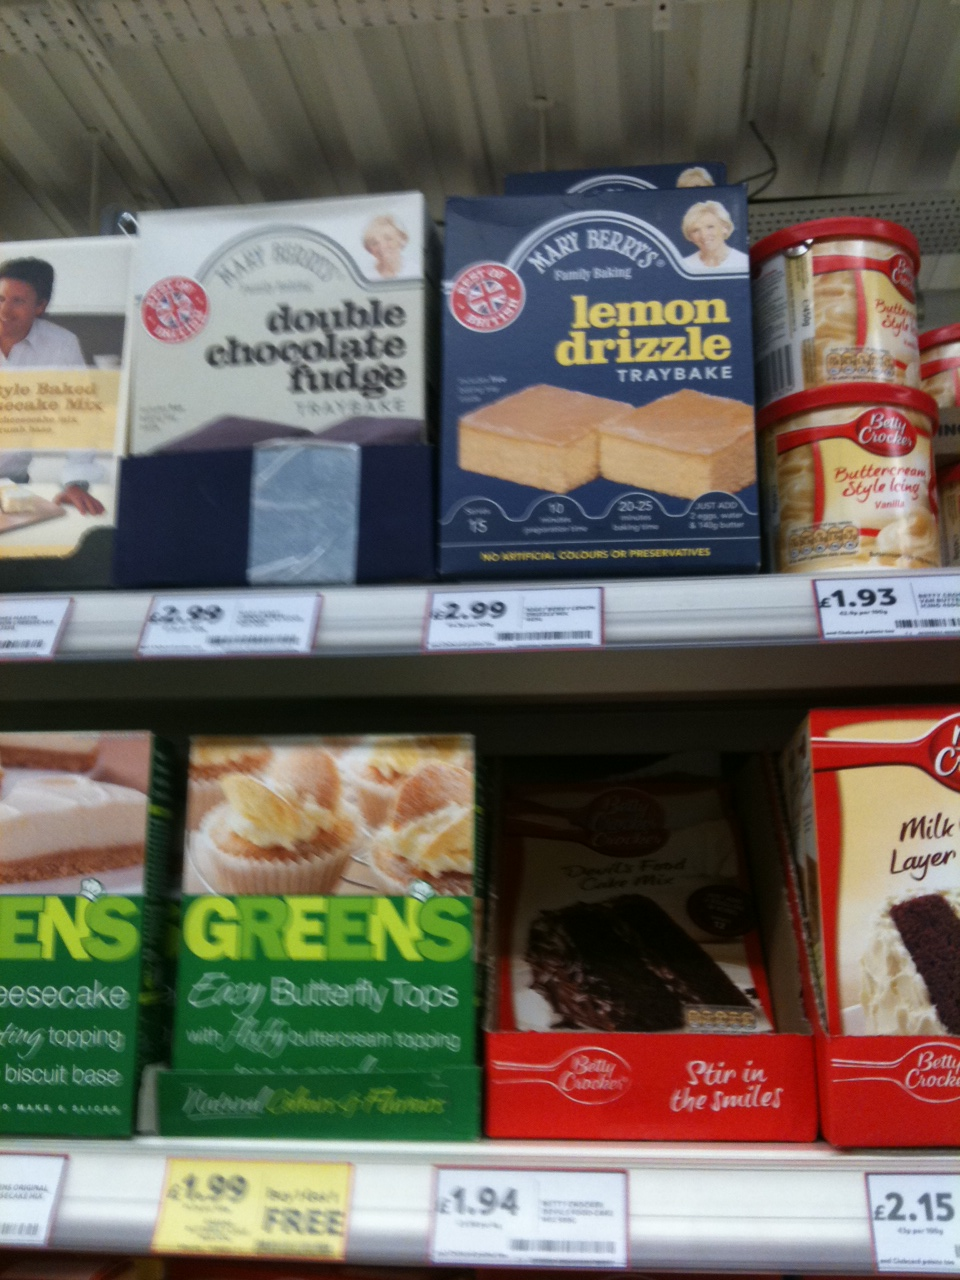 Sainsbury S Cake Decorations Sprinkles : Exciting baking supplies shopping trip!*% Kerry Cooks